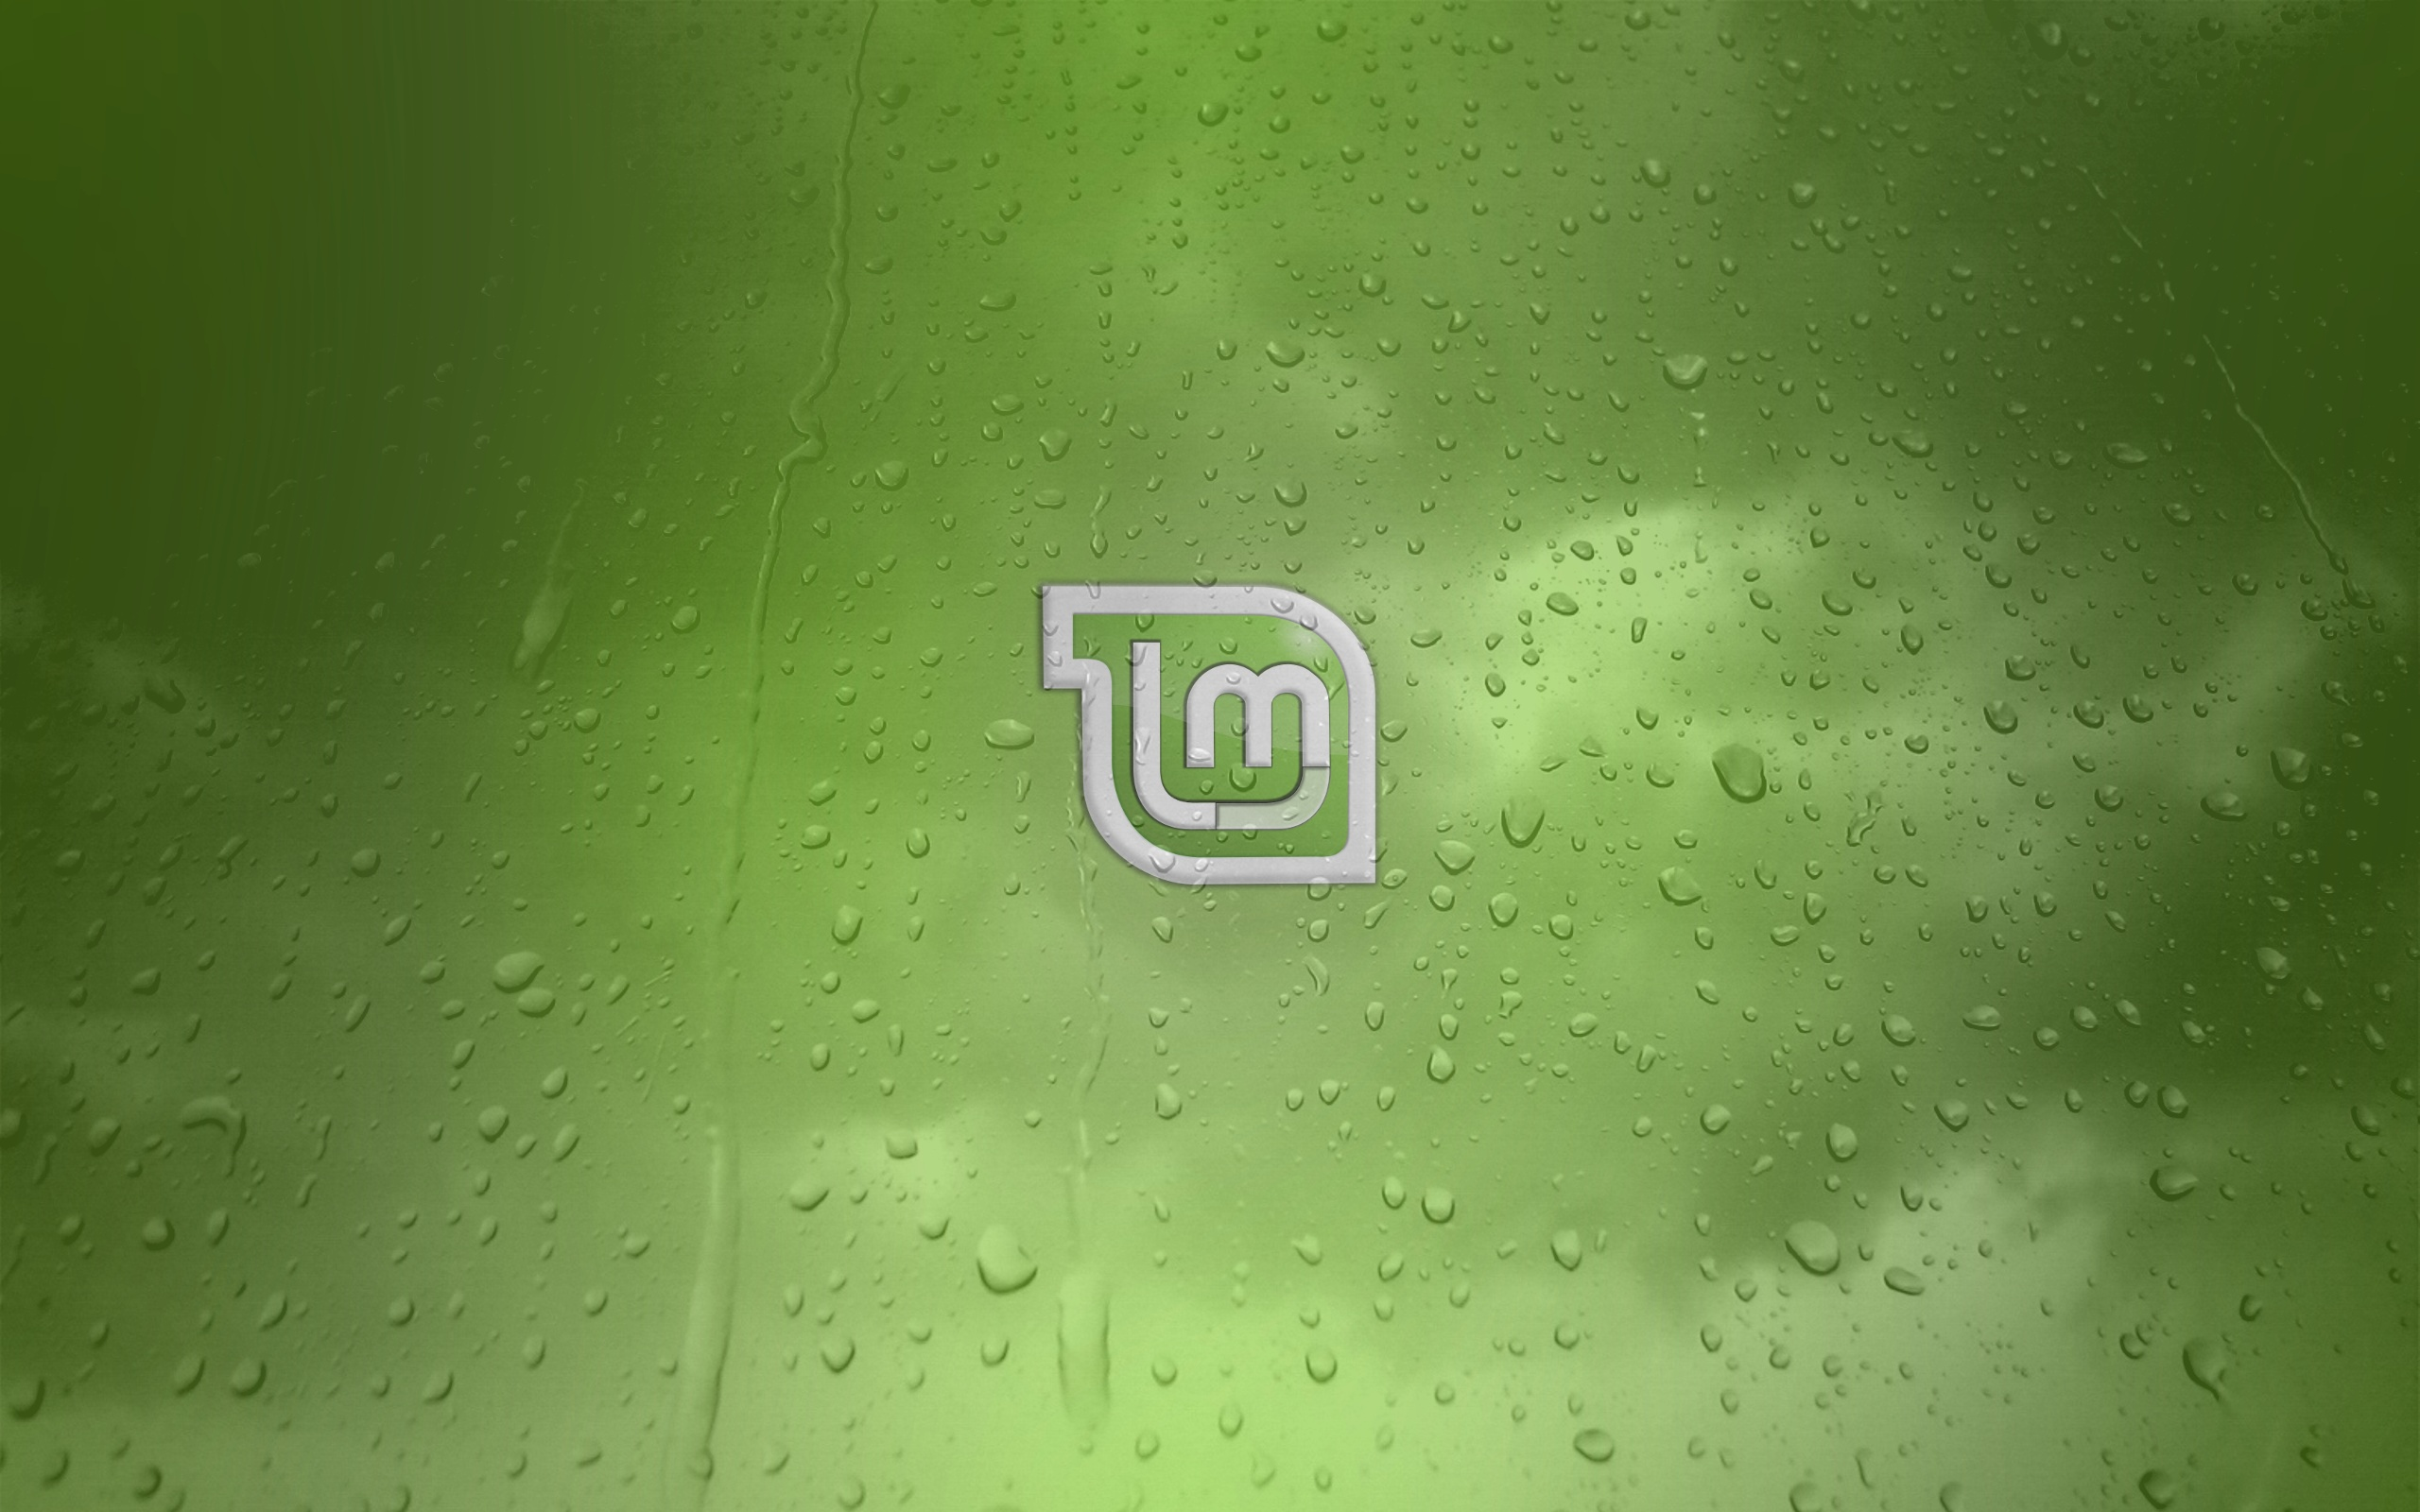 Linux Mint Backgrounds